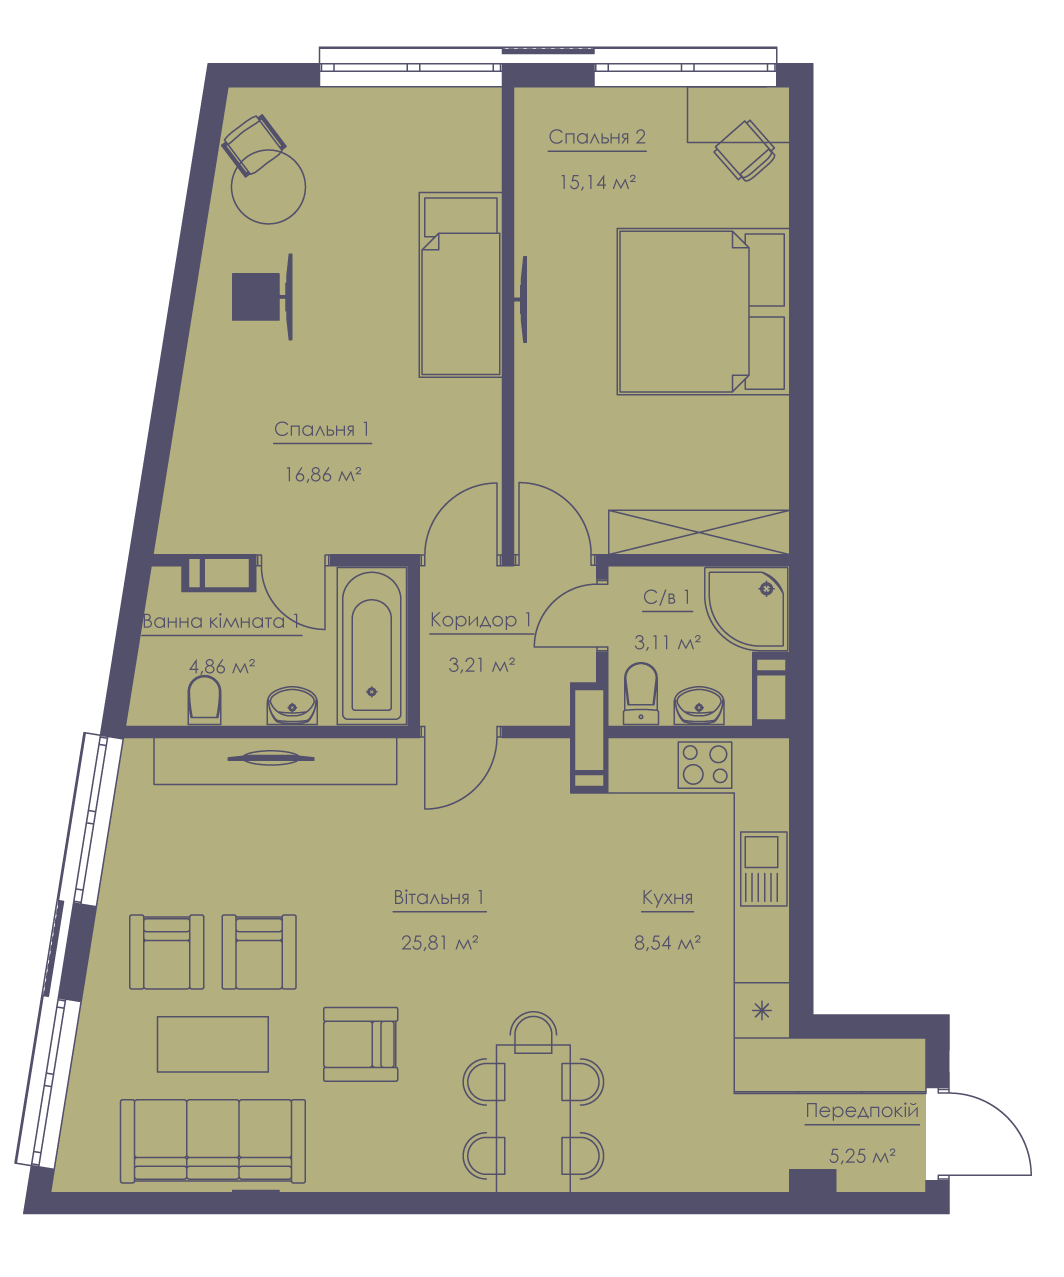 Apartment layout KV_140_3.3n_1_1_7-1